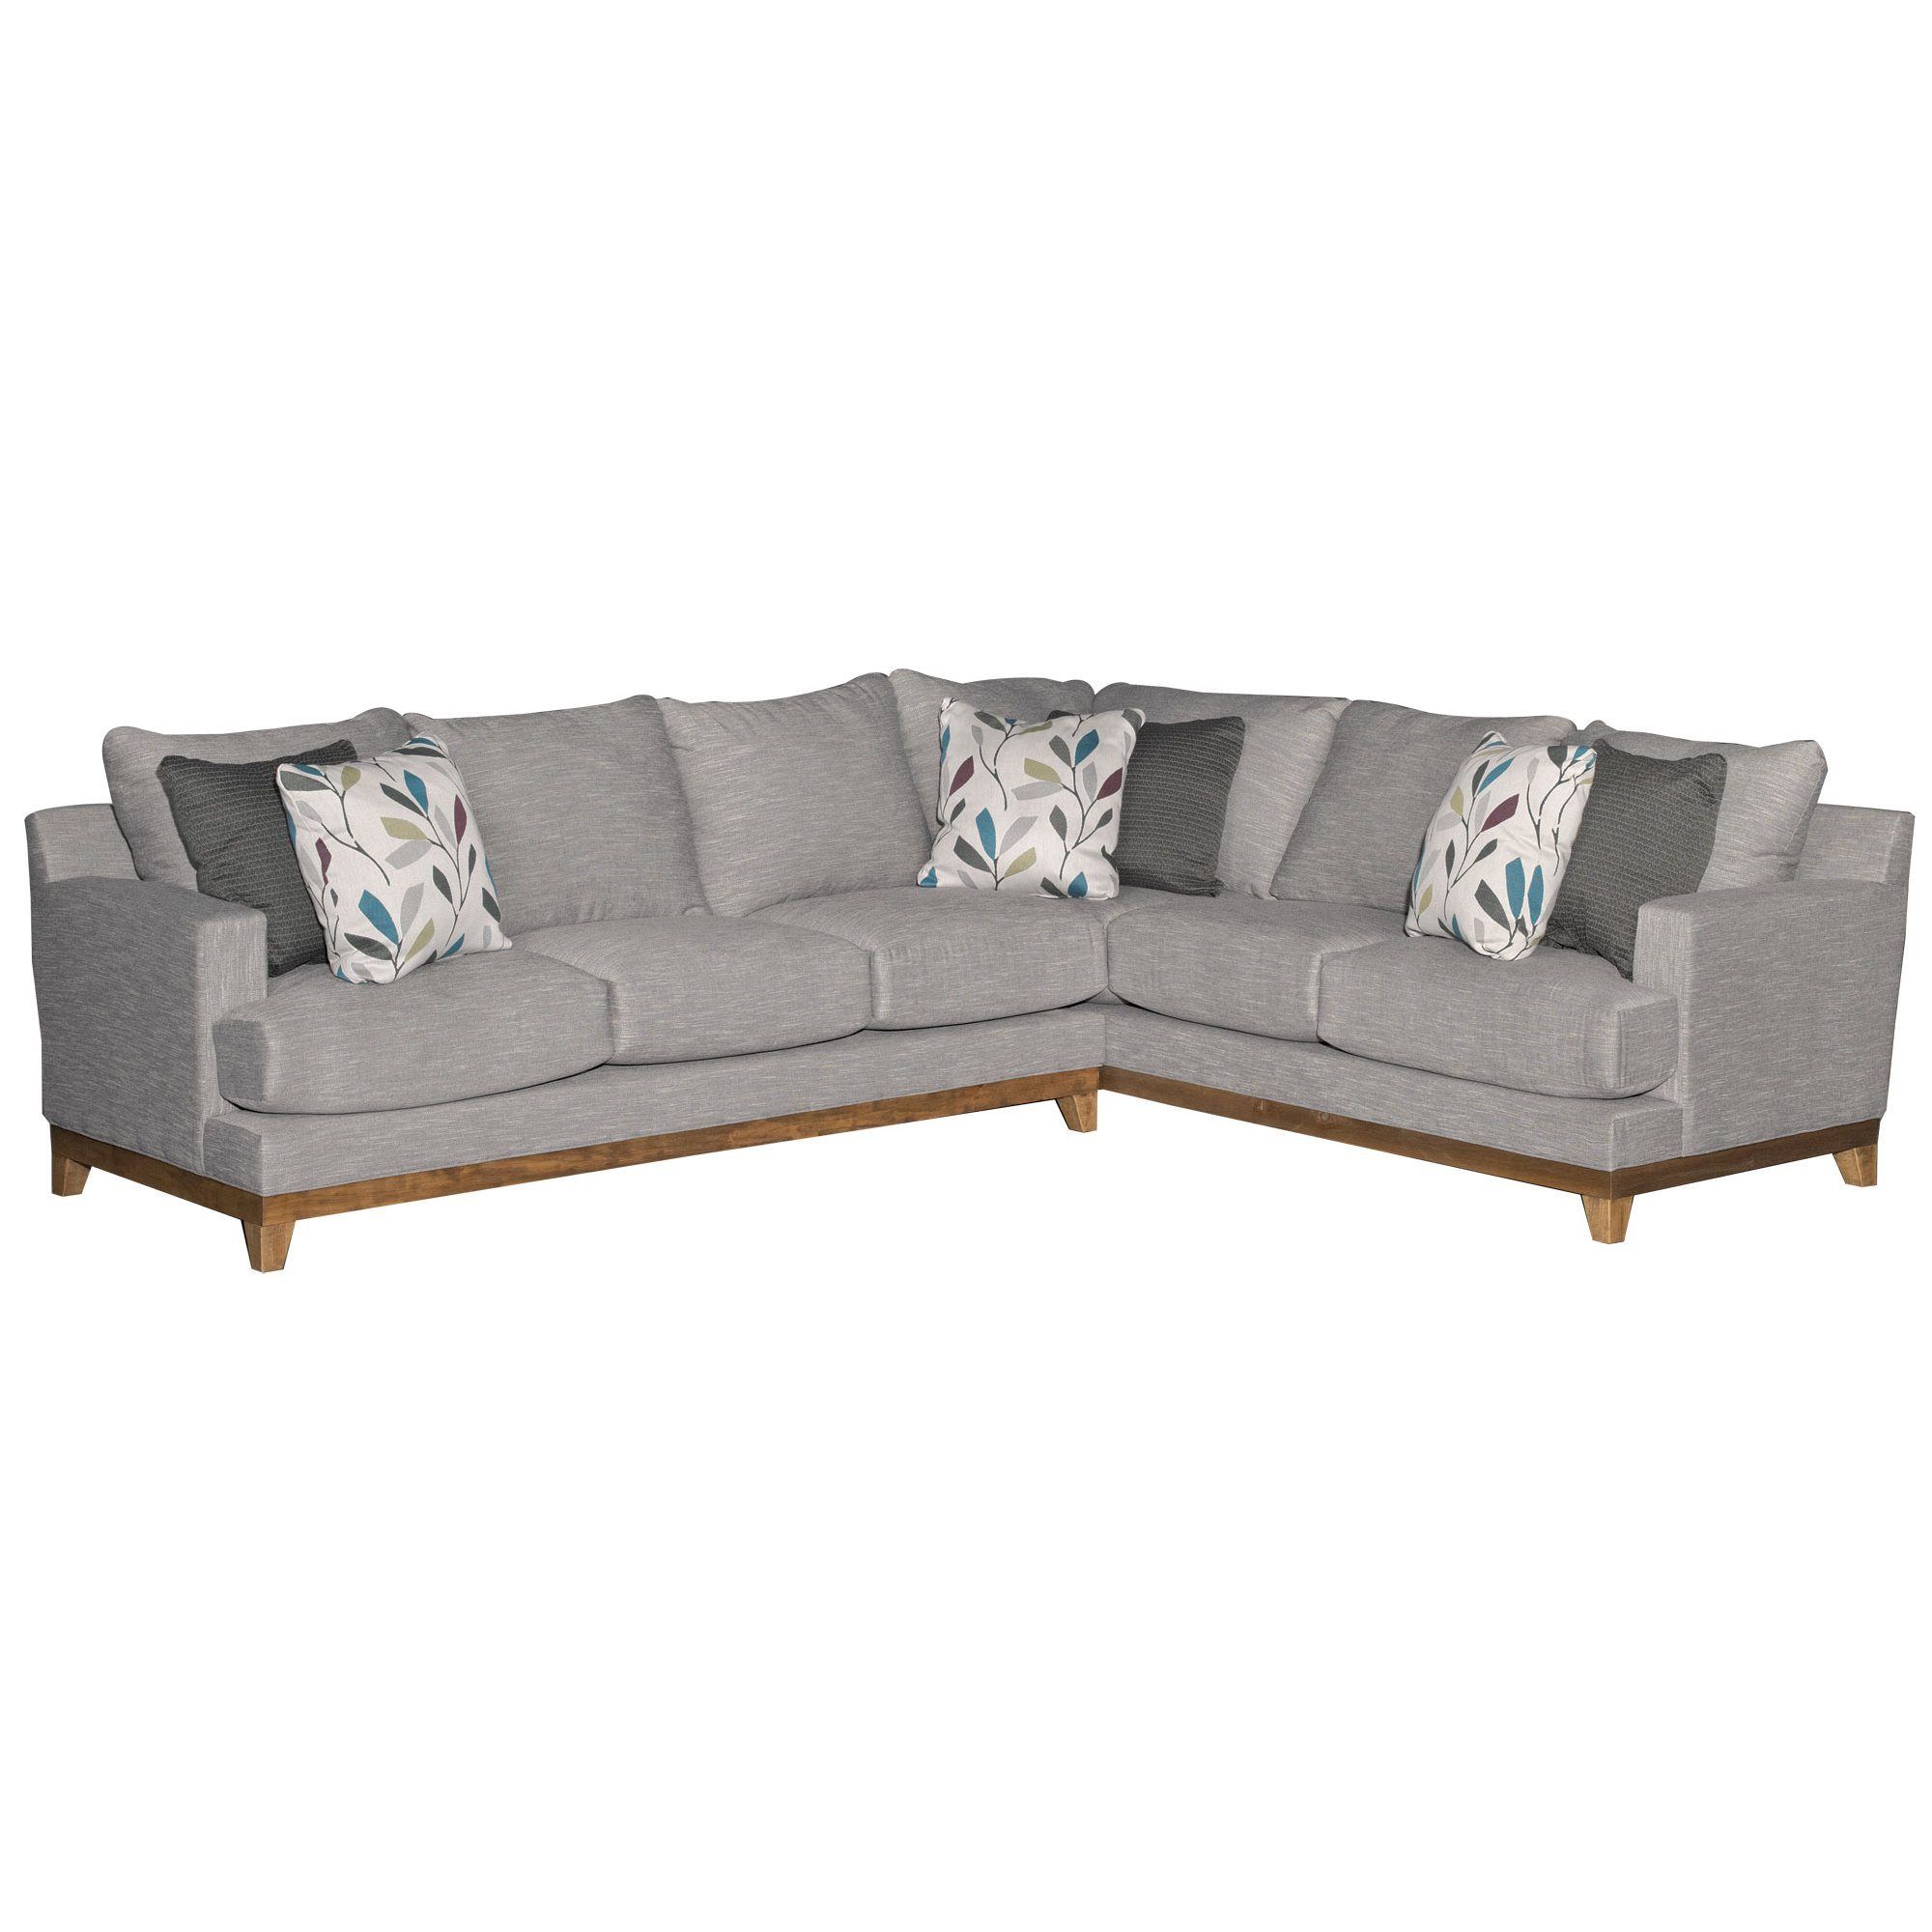 Willey Furniture: Gray Casual Contemporary 2 Piece Sectional - Dayton